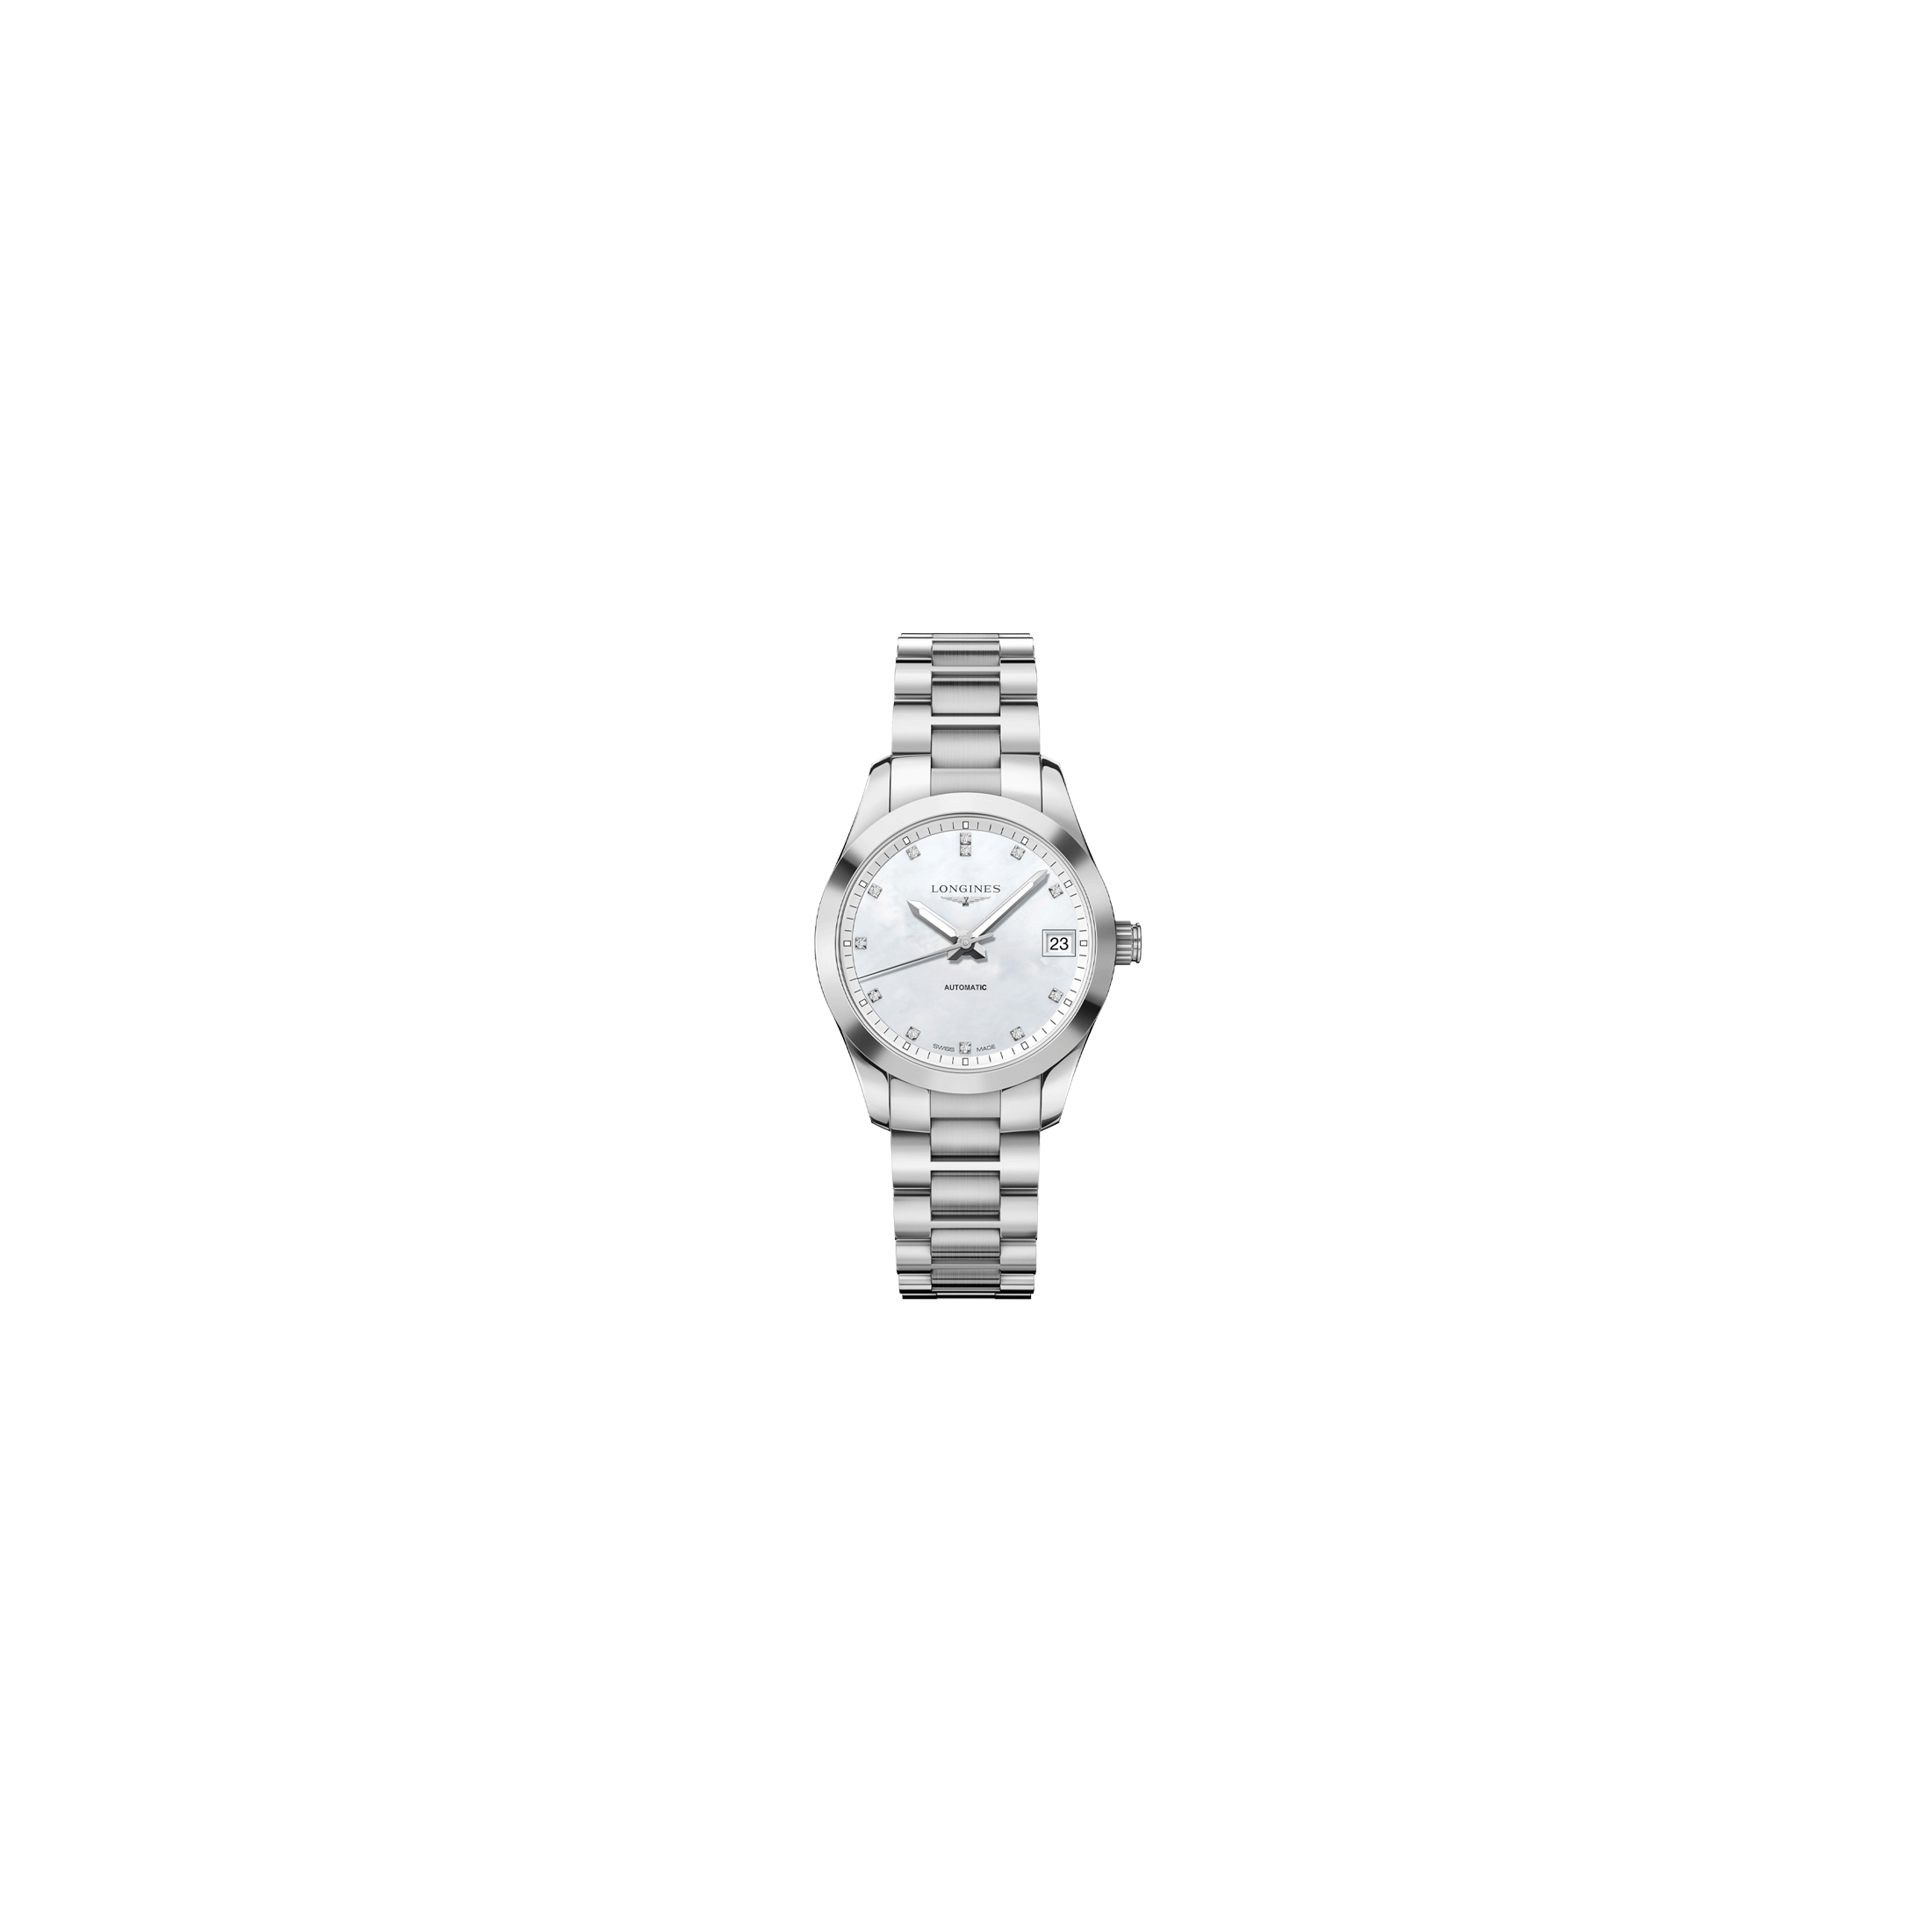 Montre Longines Conquest Classic automatique cadran nacre index diamants bracelet acier 34 mm - SOLDAT PL